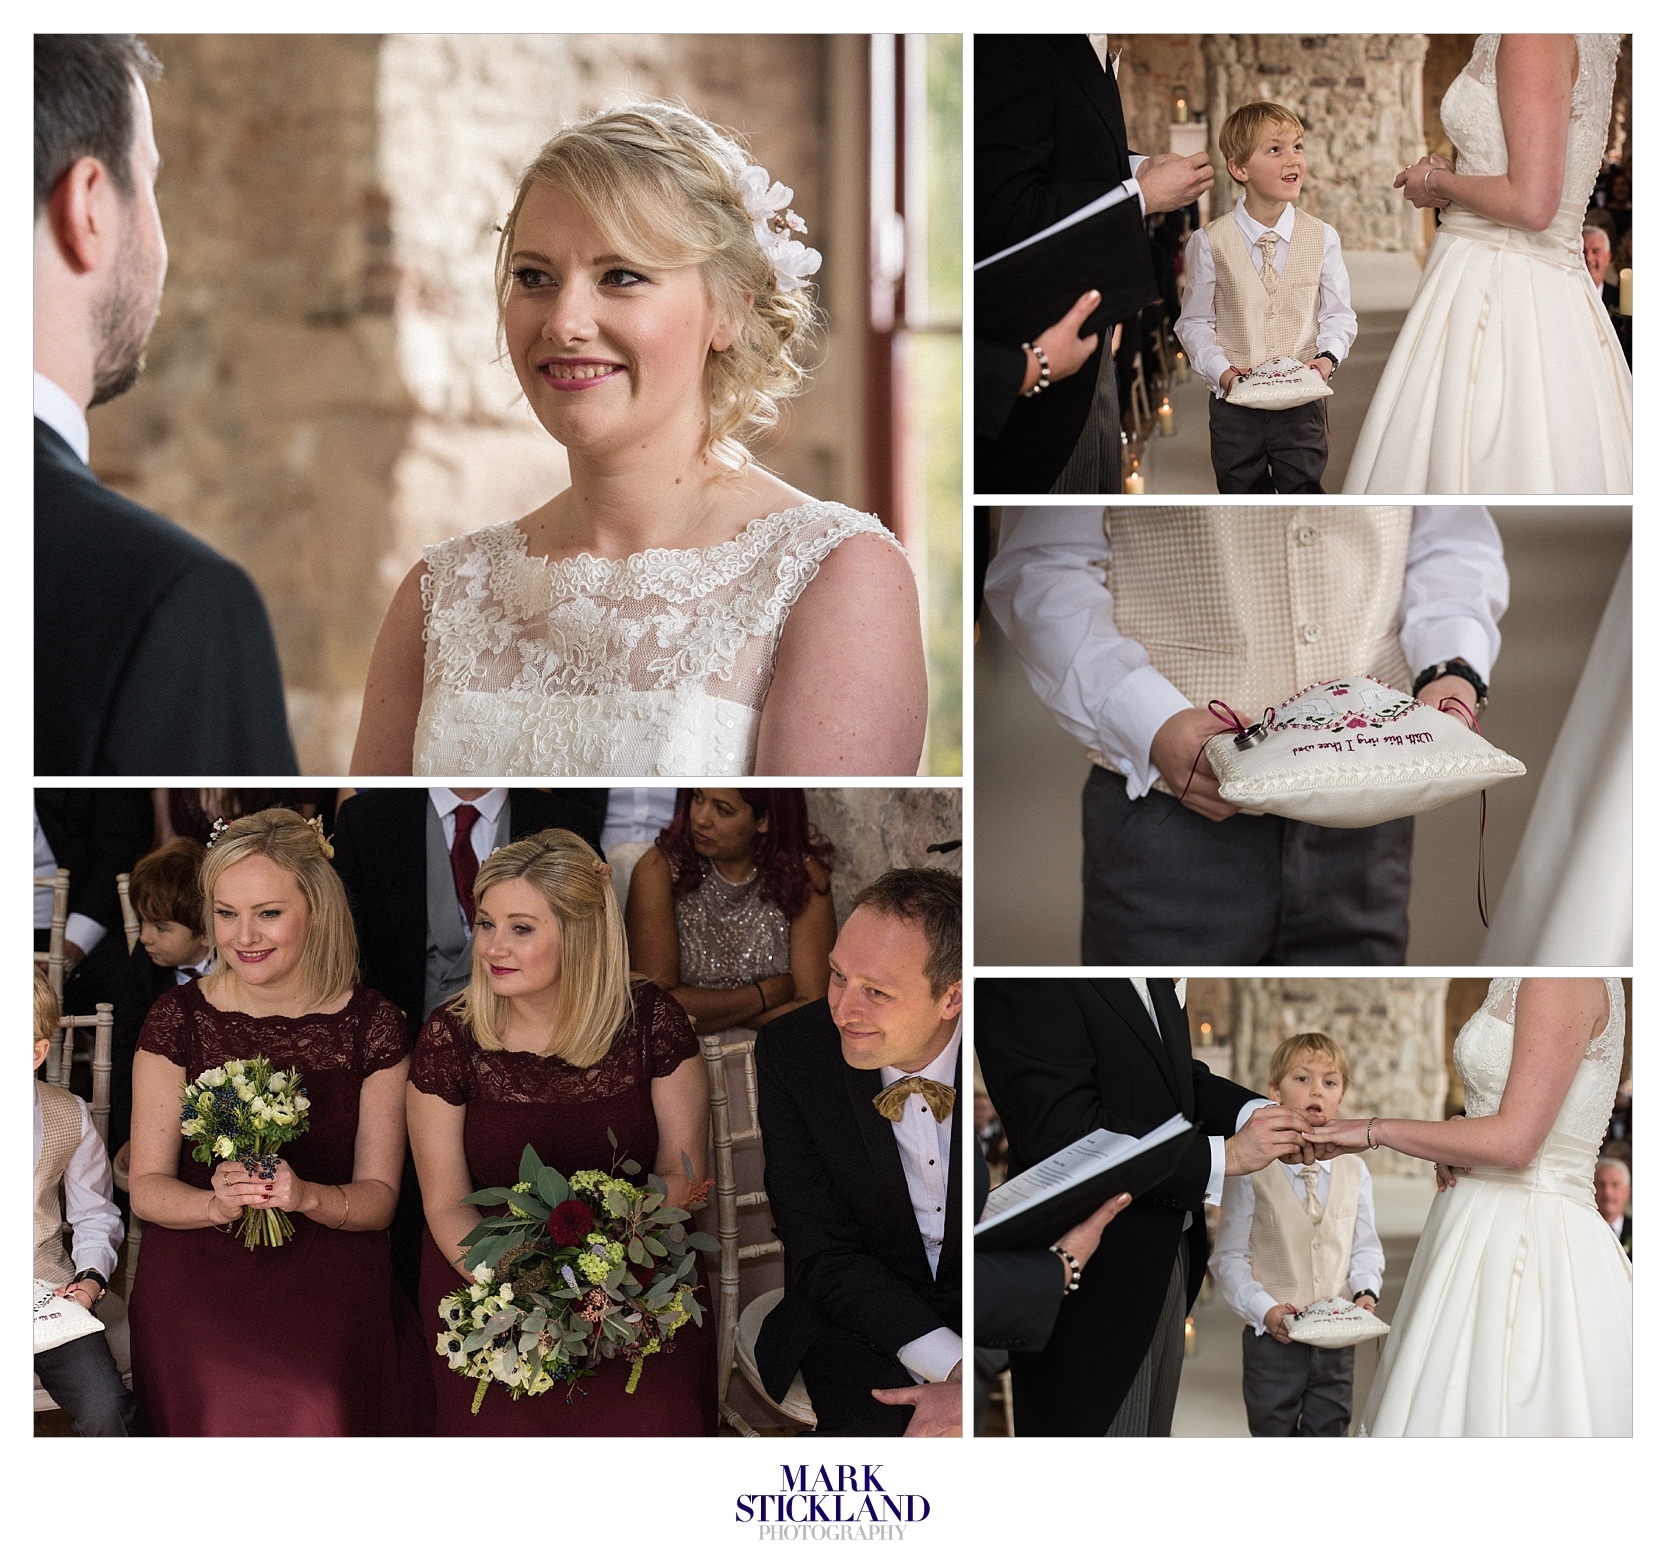 lulworth_castle_wedding_dorset_mark stickland photography.10